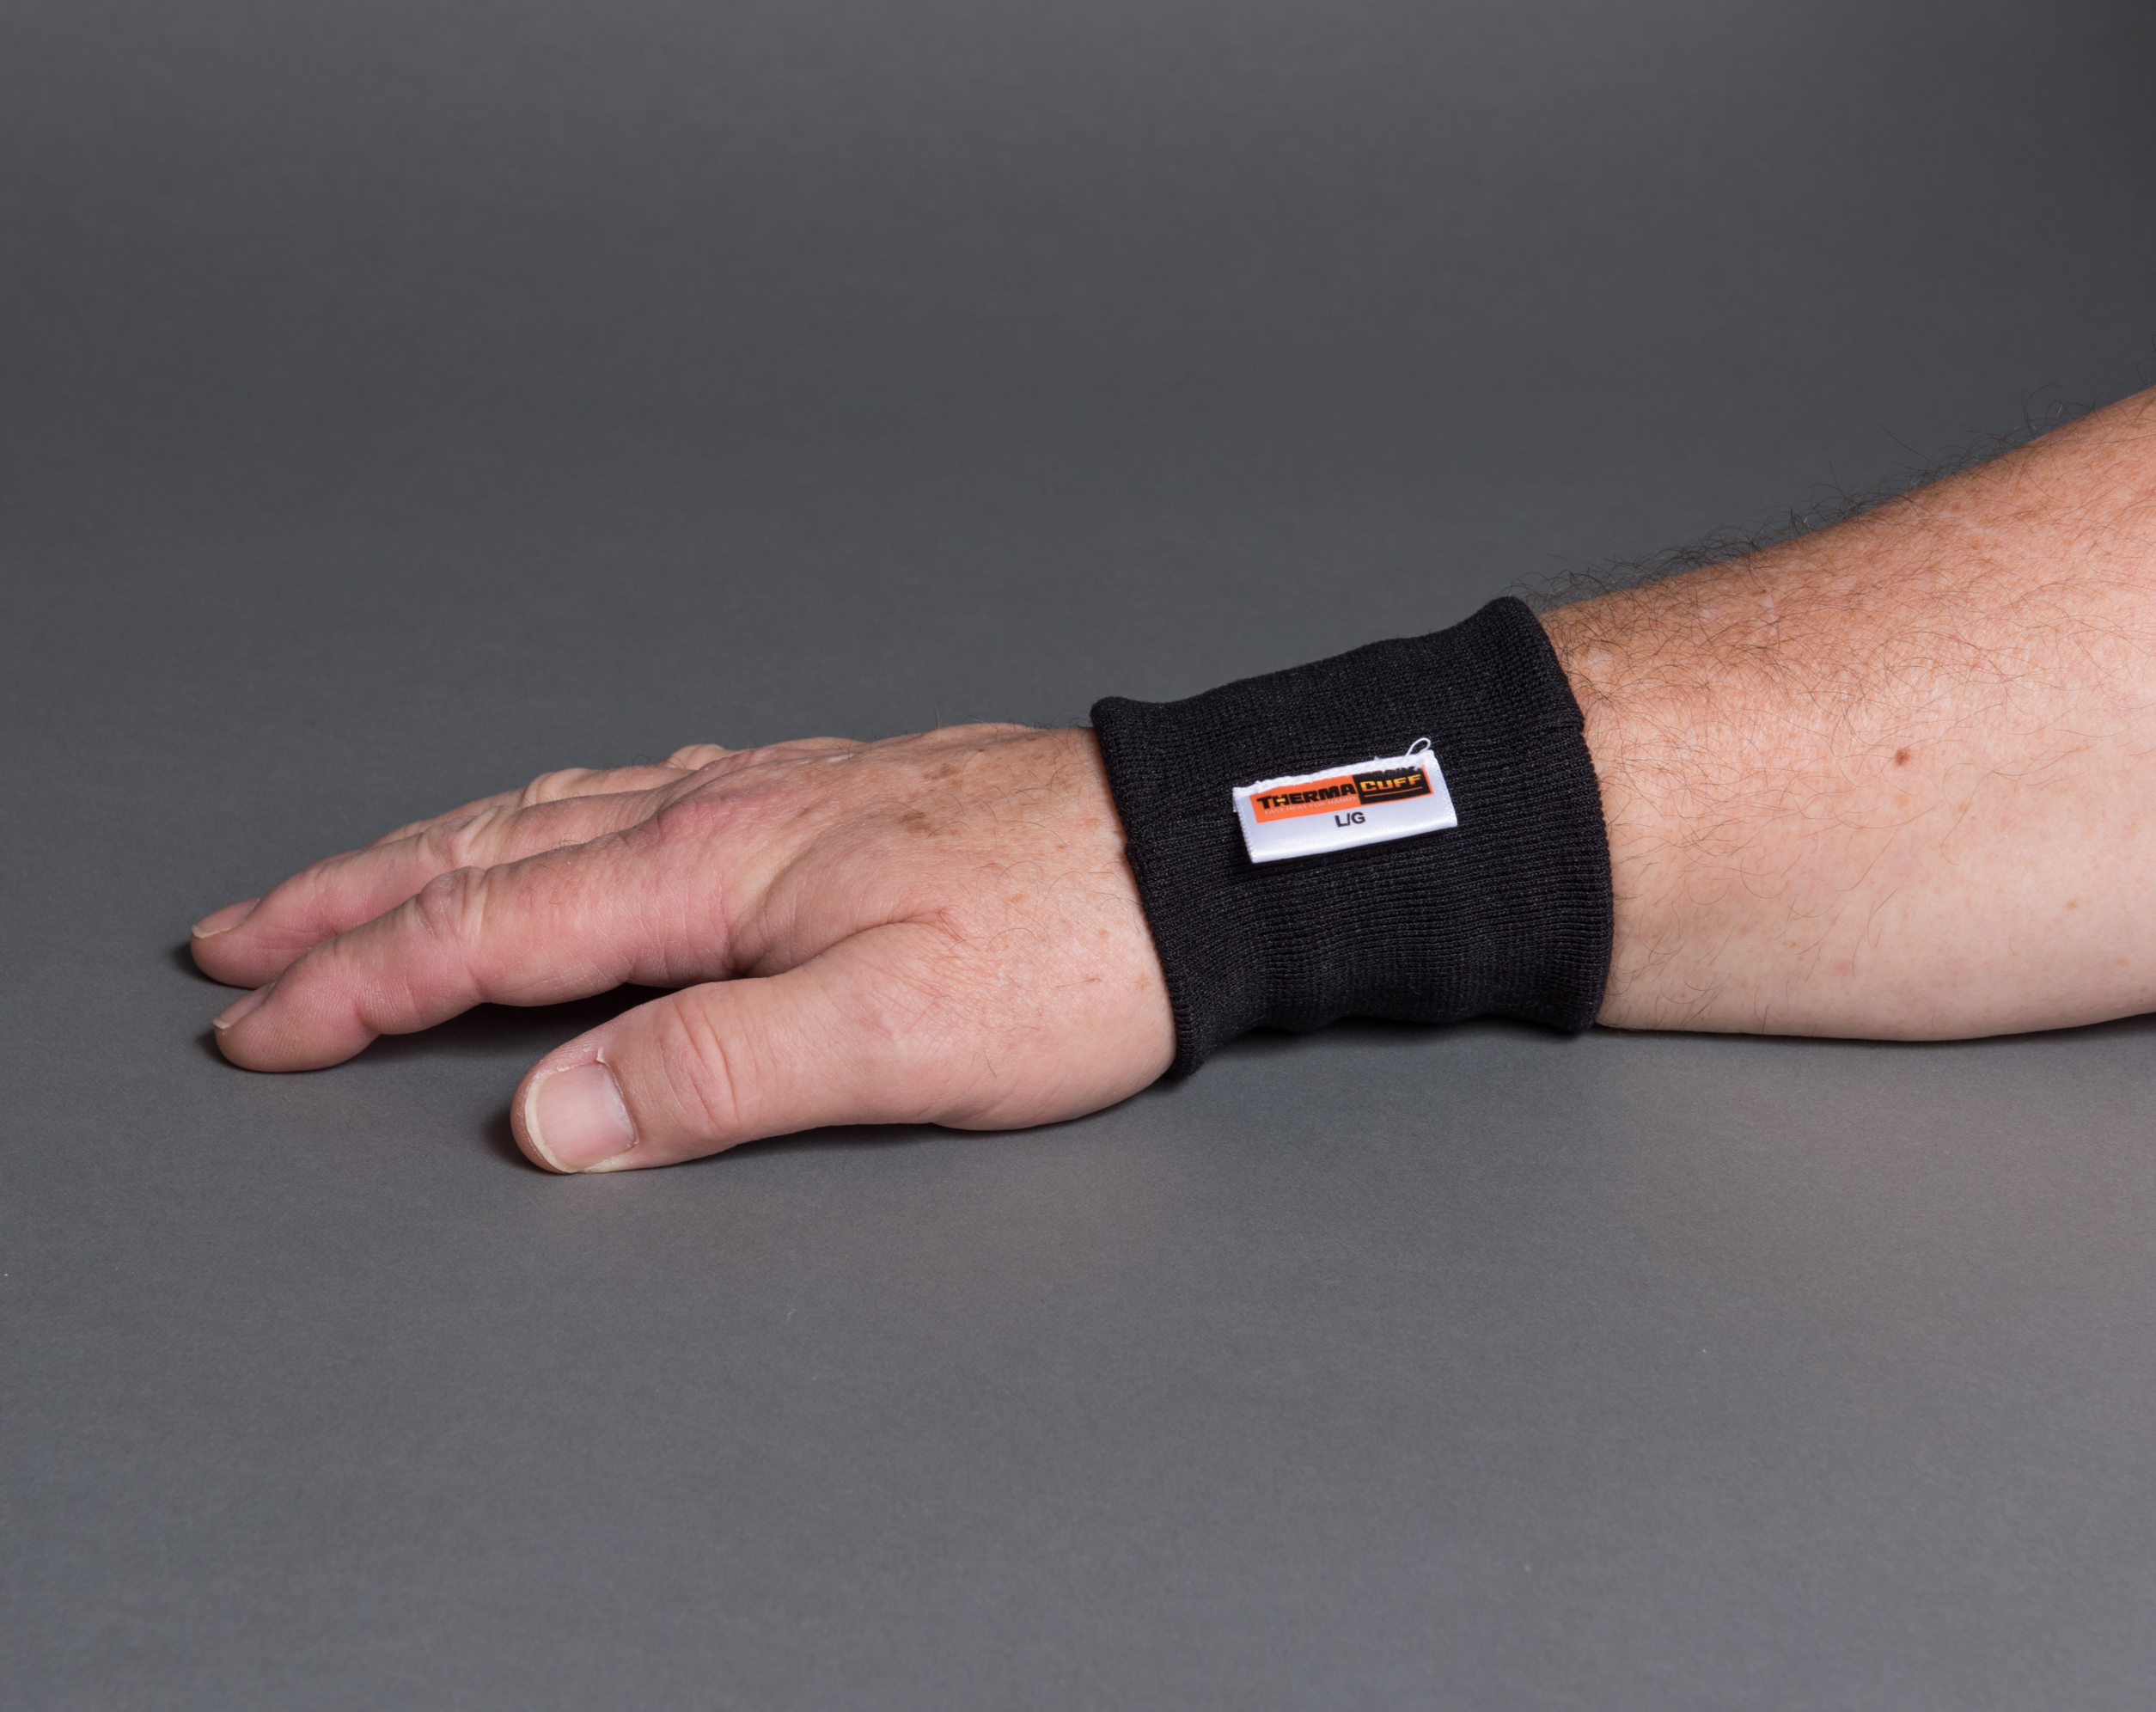 about - thermacuff on wrist palm down